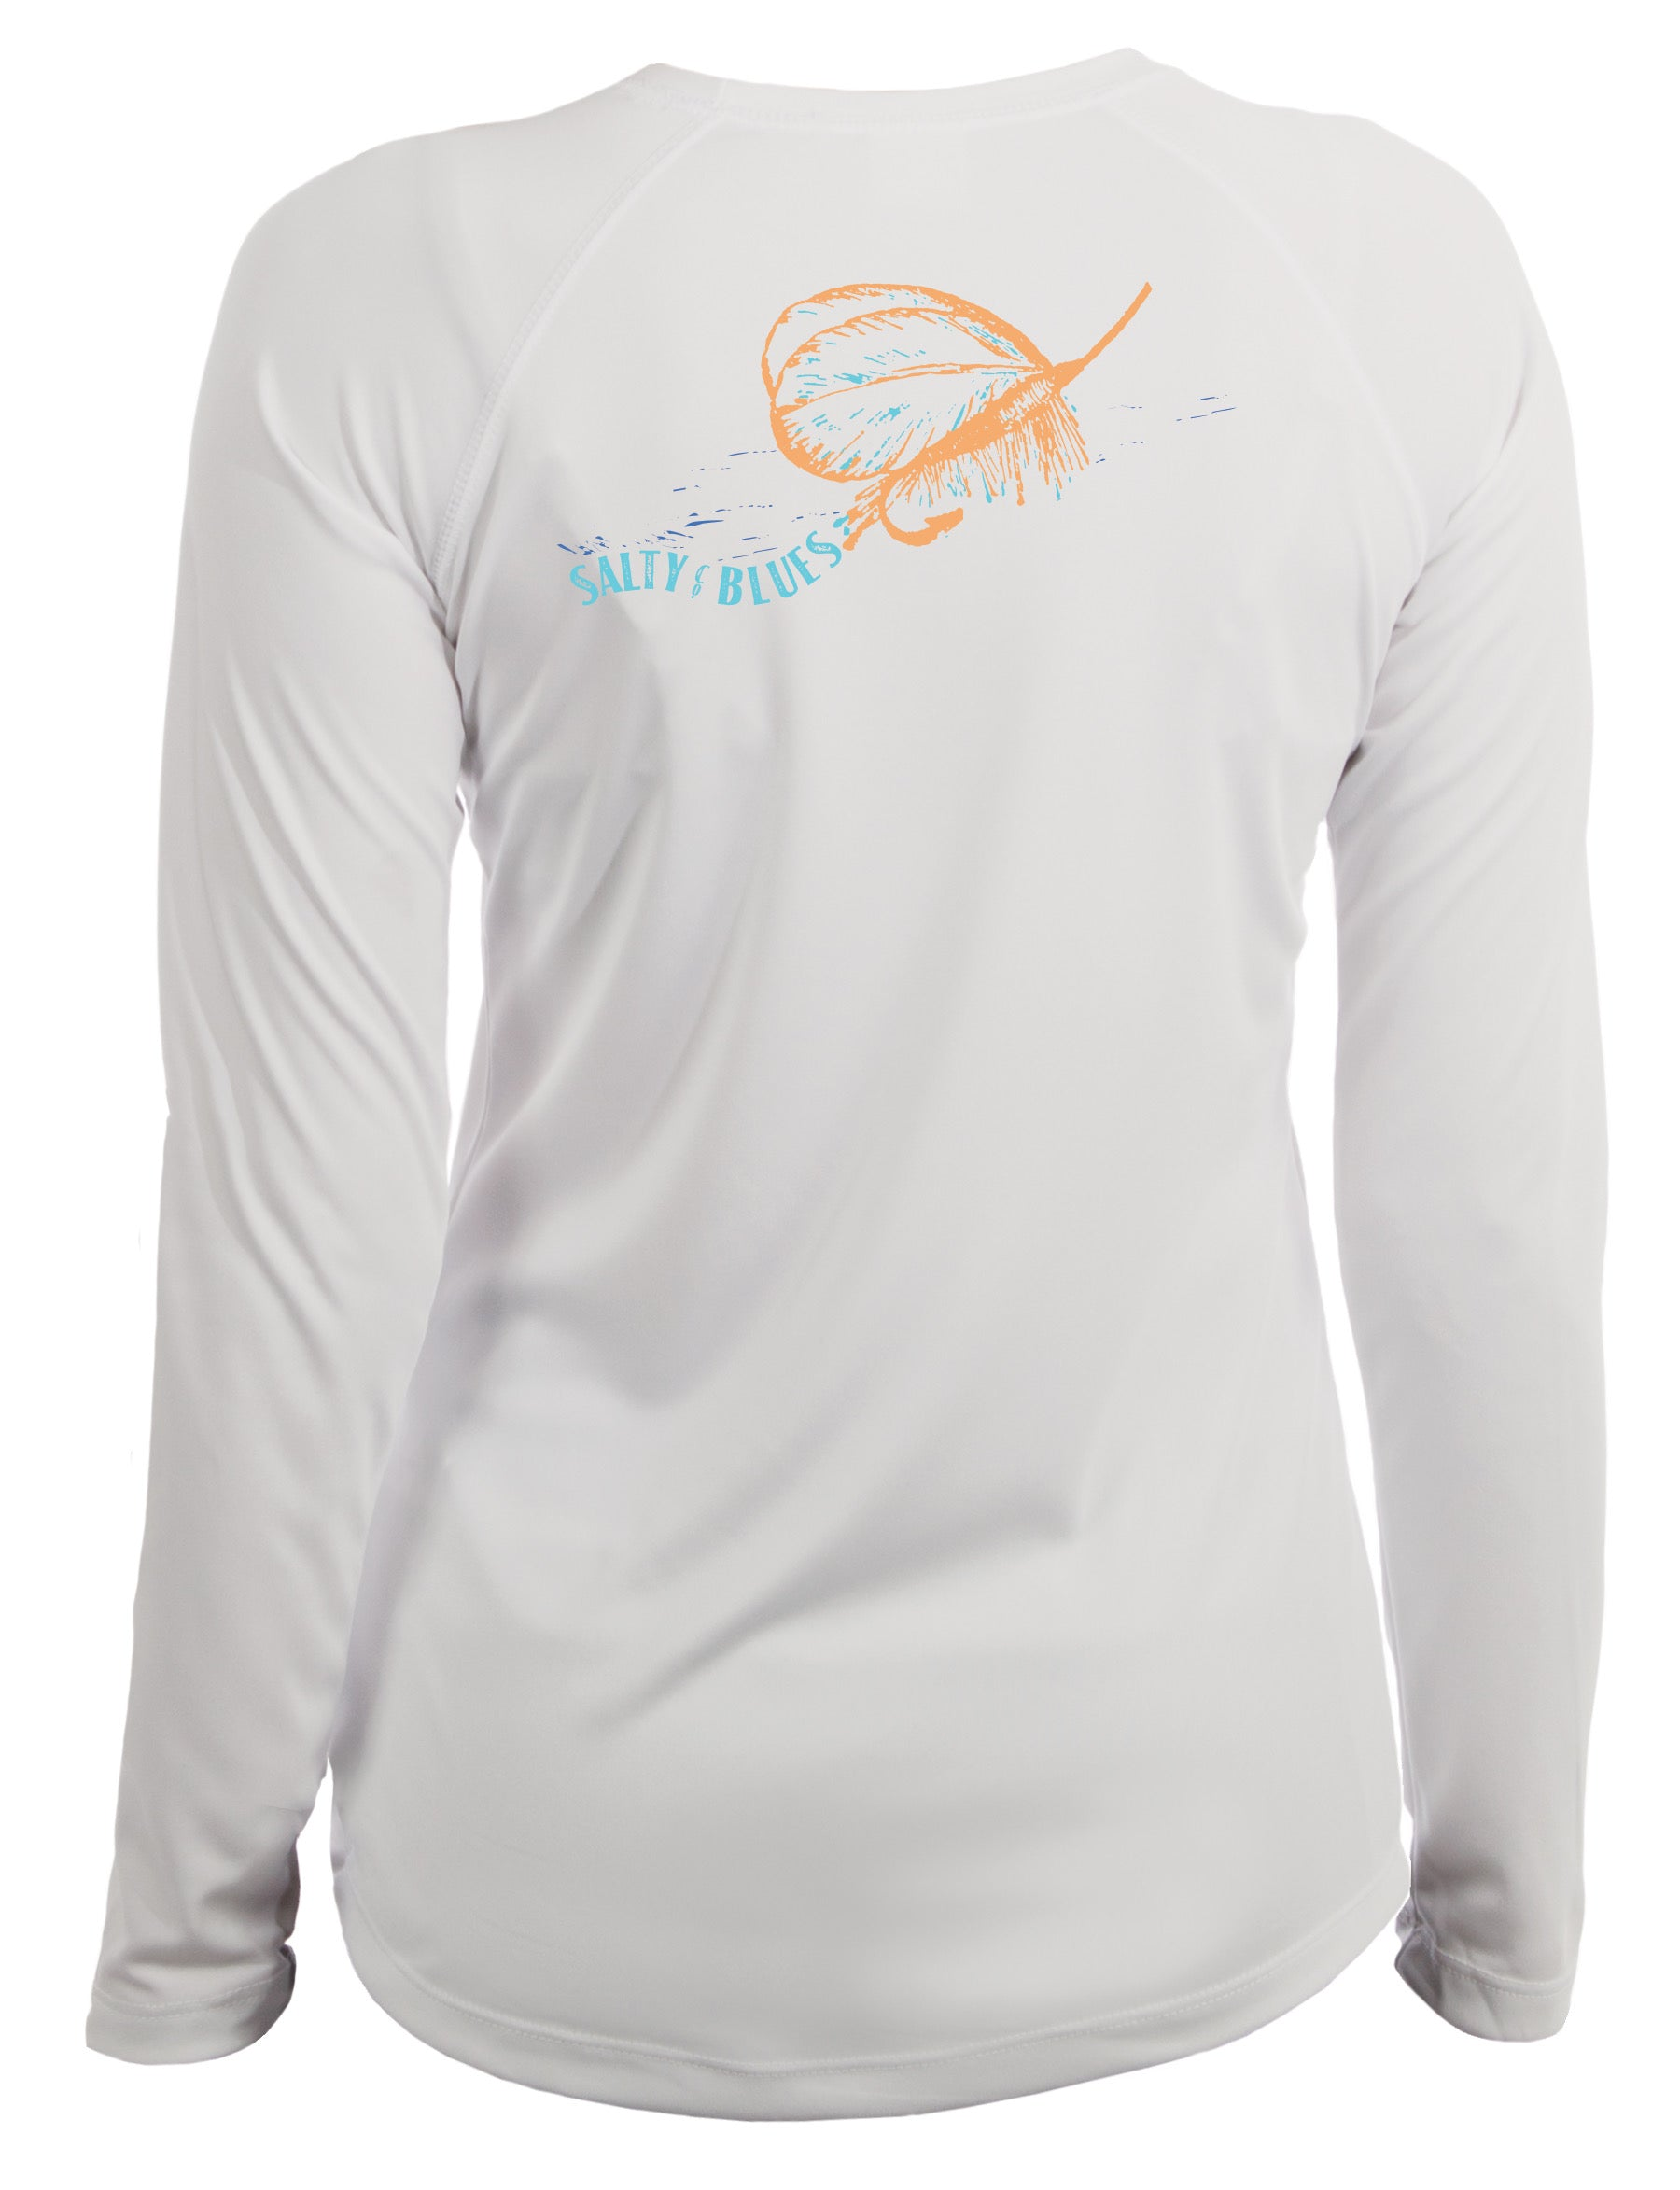 Lured Women's Performance - Women's Performance Shirt - Salty Blues